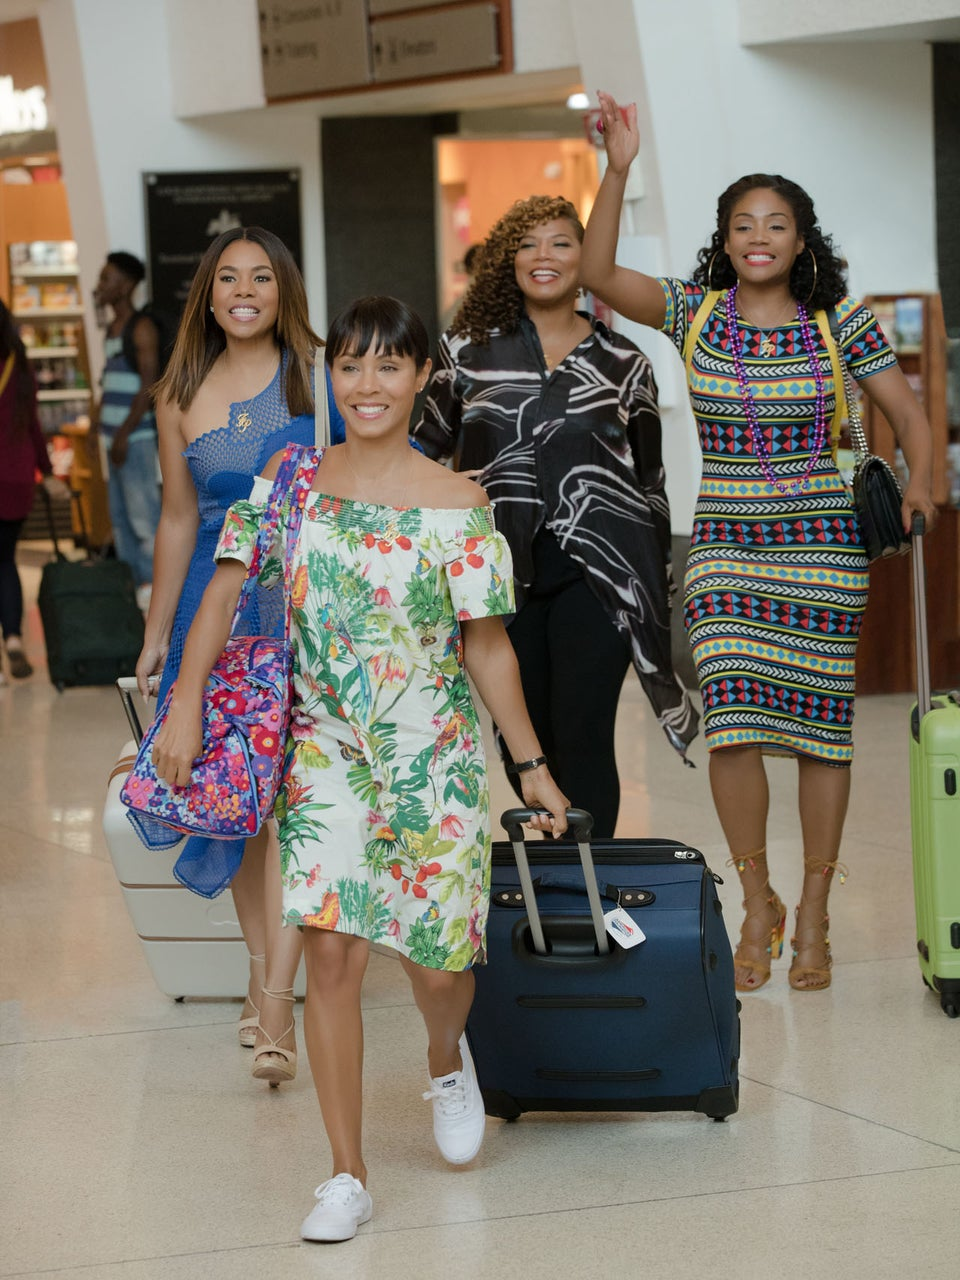 10 Scenarios Every Black Woman Can Relate To On Girls' Trips